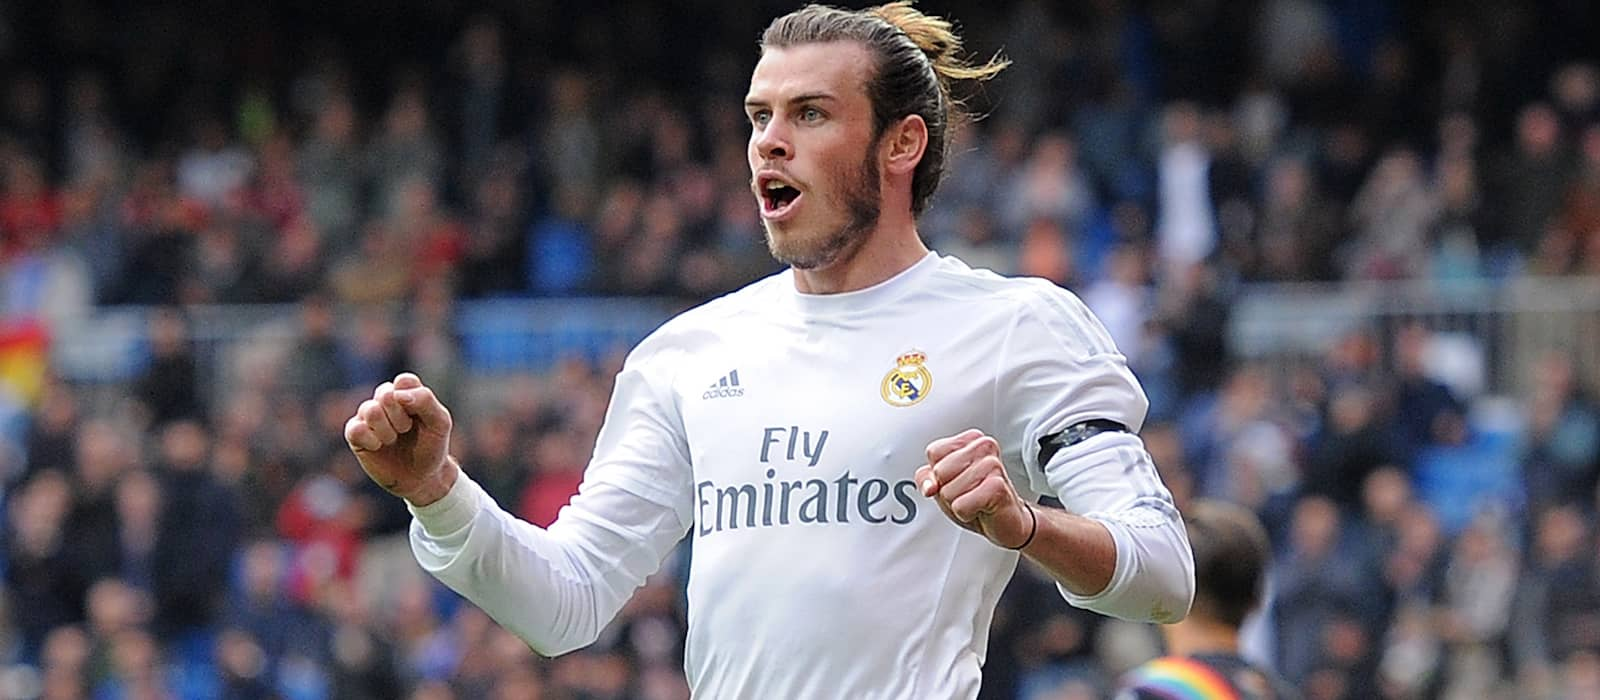 Manchester United confident of signing Real Madrid star Gareth Bale